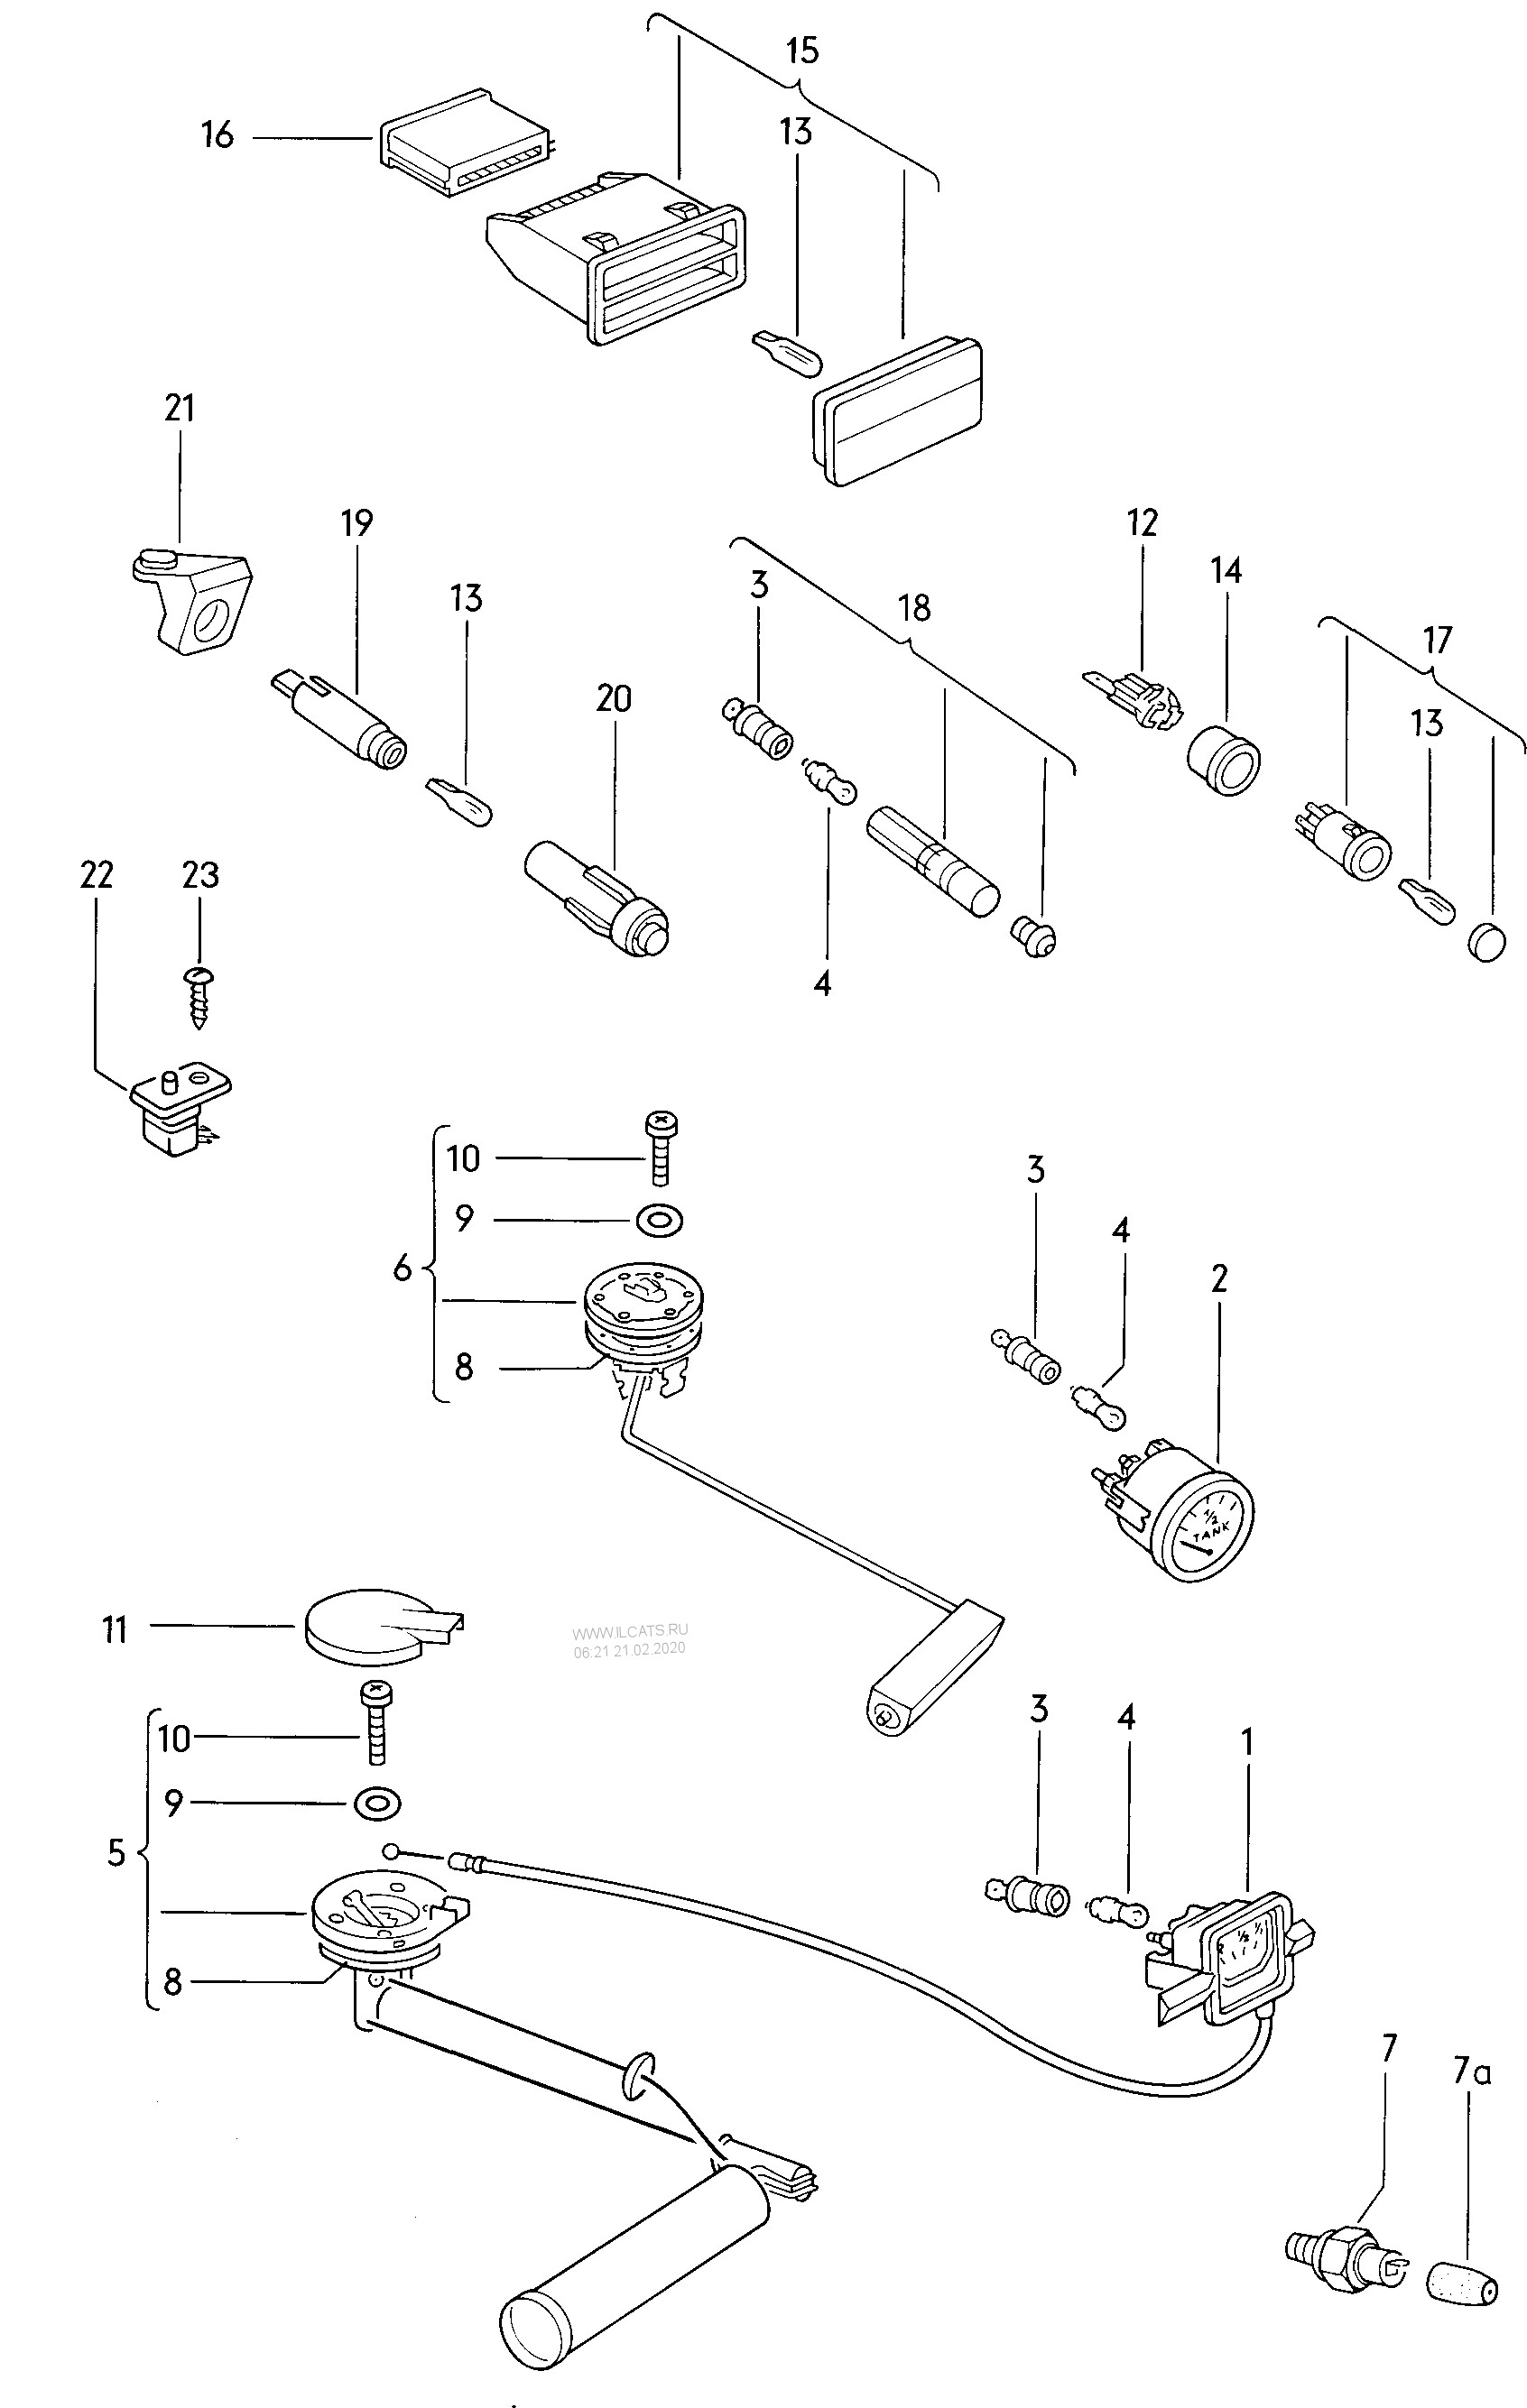 Oil Pressure Gauge Connection Diagram